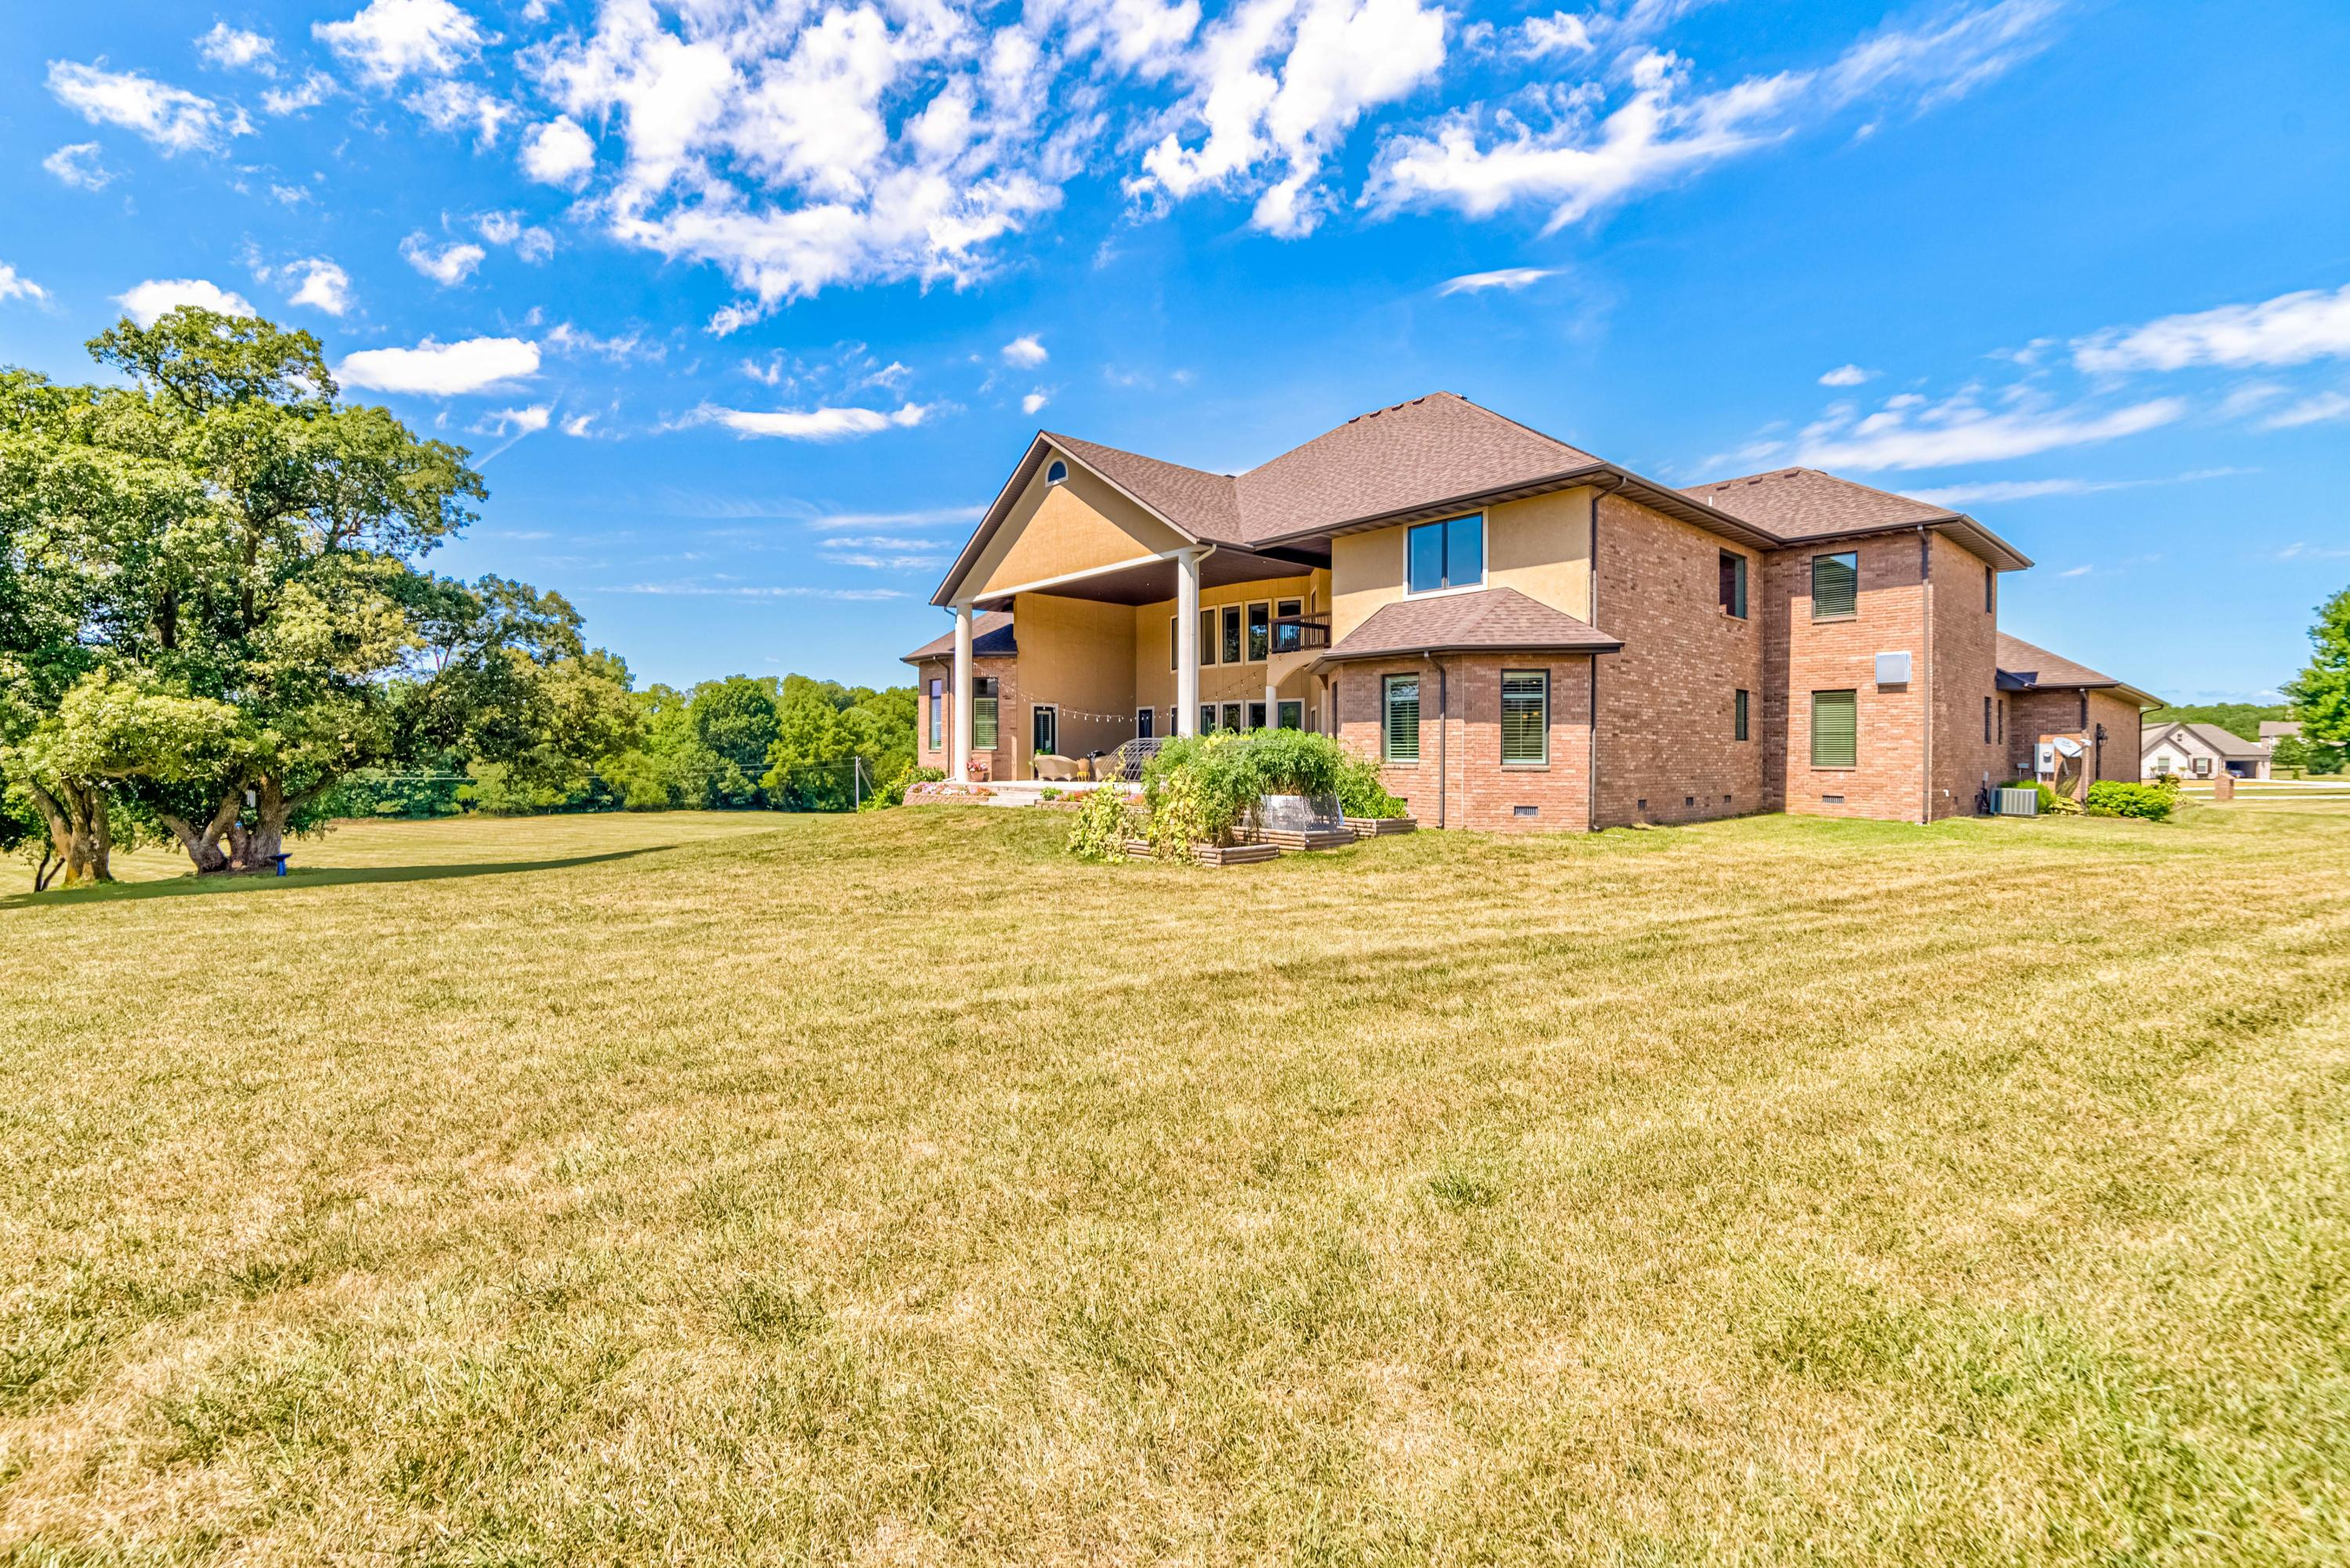 7512 West Turkey Hatch Lane Willard, MO 65781